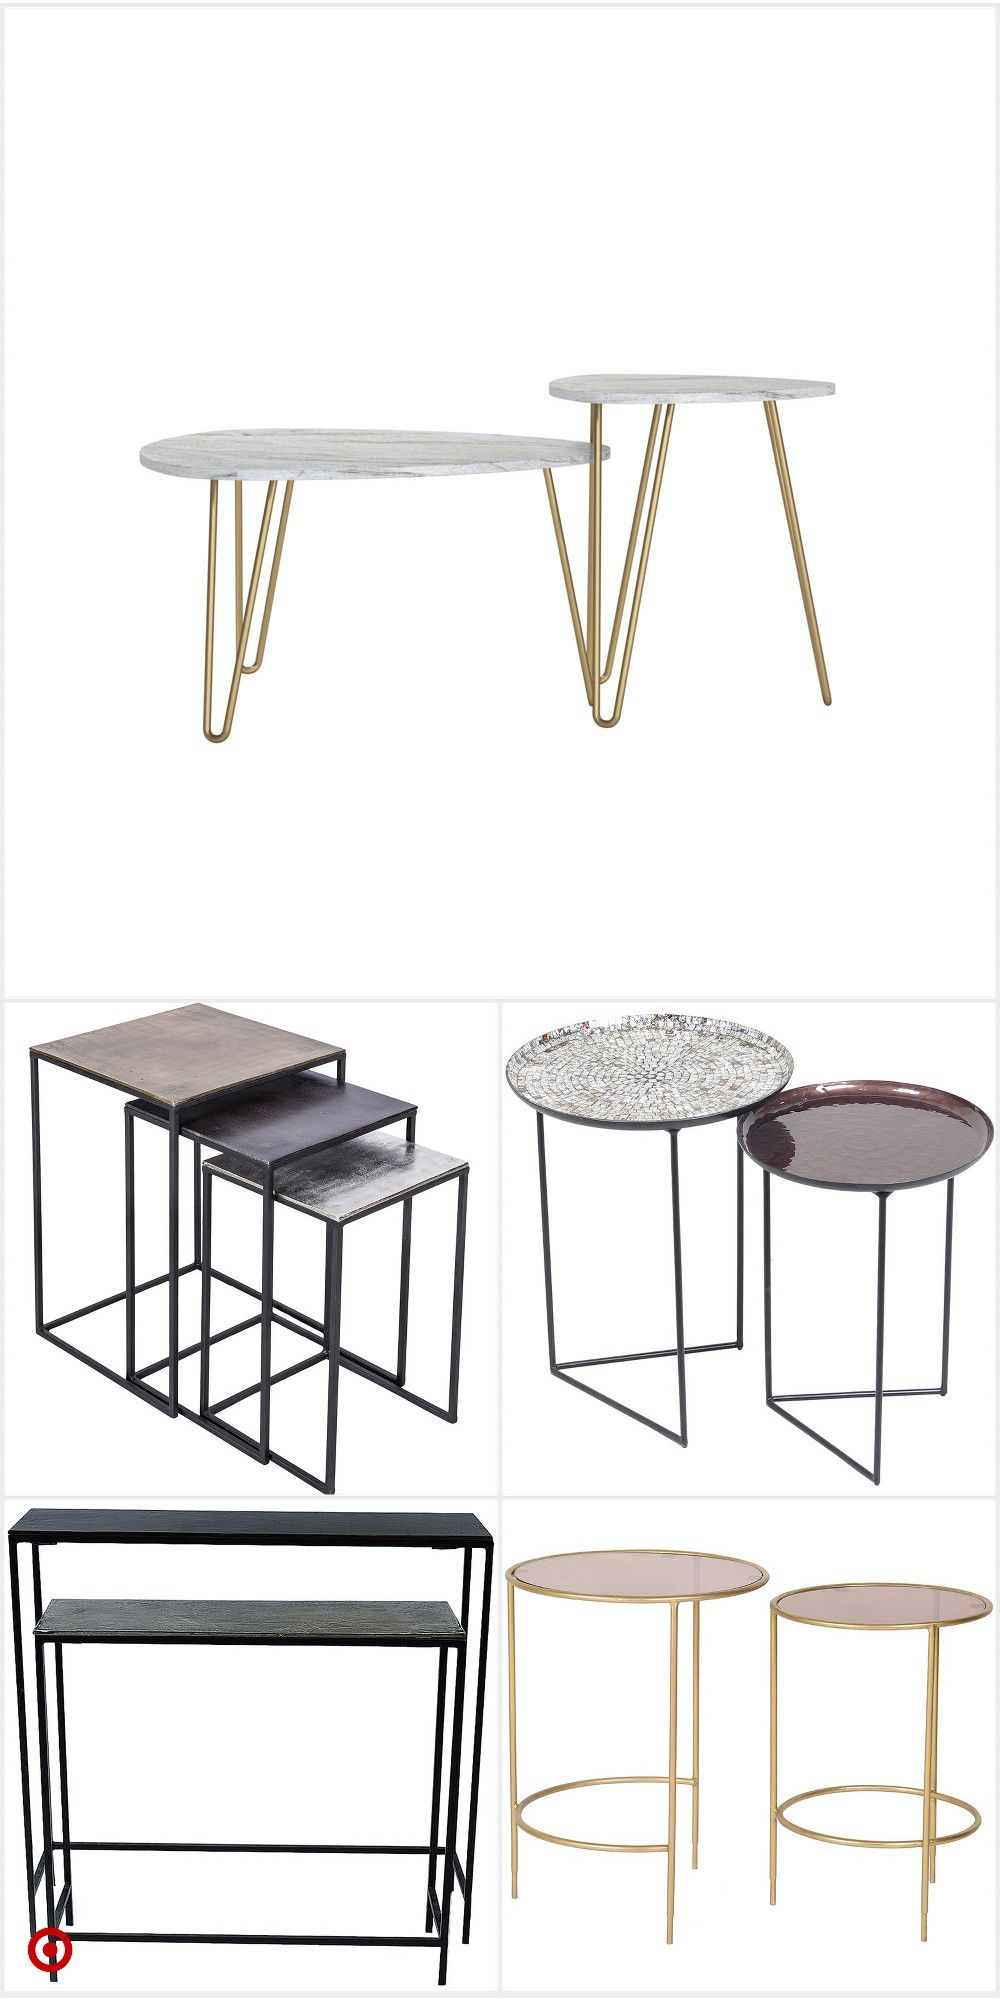 Shop Target For Nesting Tables You Will Love At Great Low Prices Free Shipping On Orde Interior Design Living Room Modern Nesting Tables Furniture Side Tables